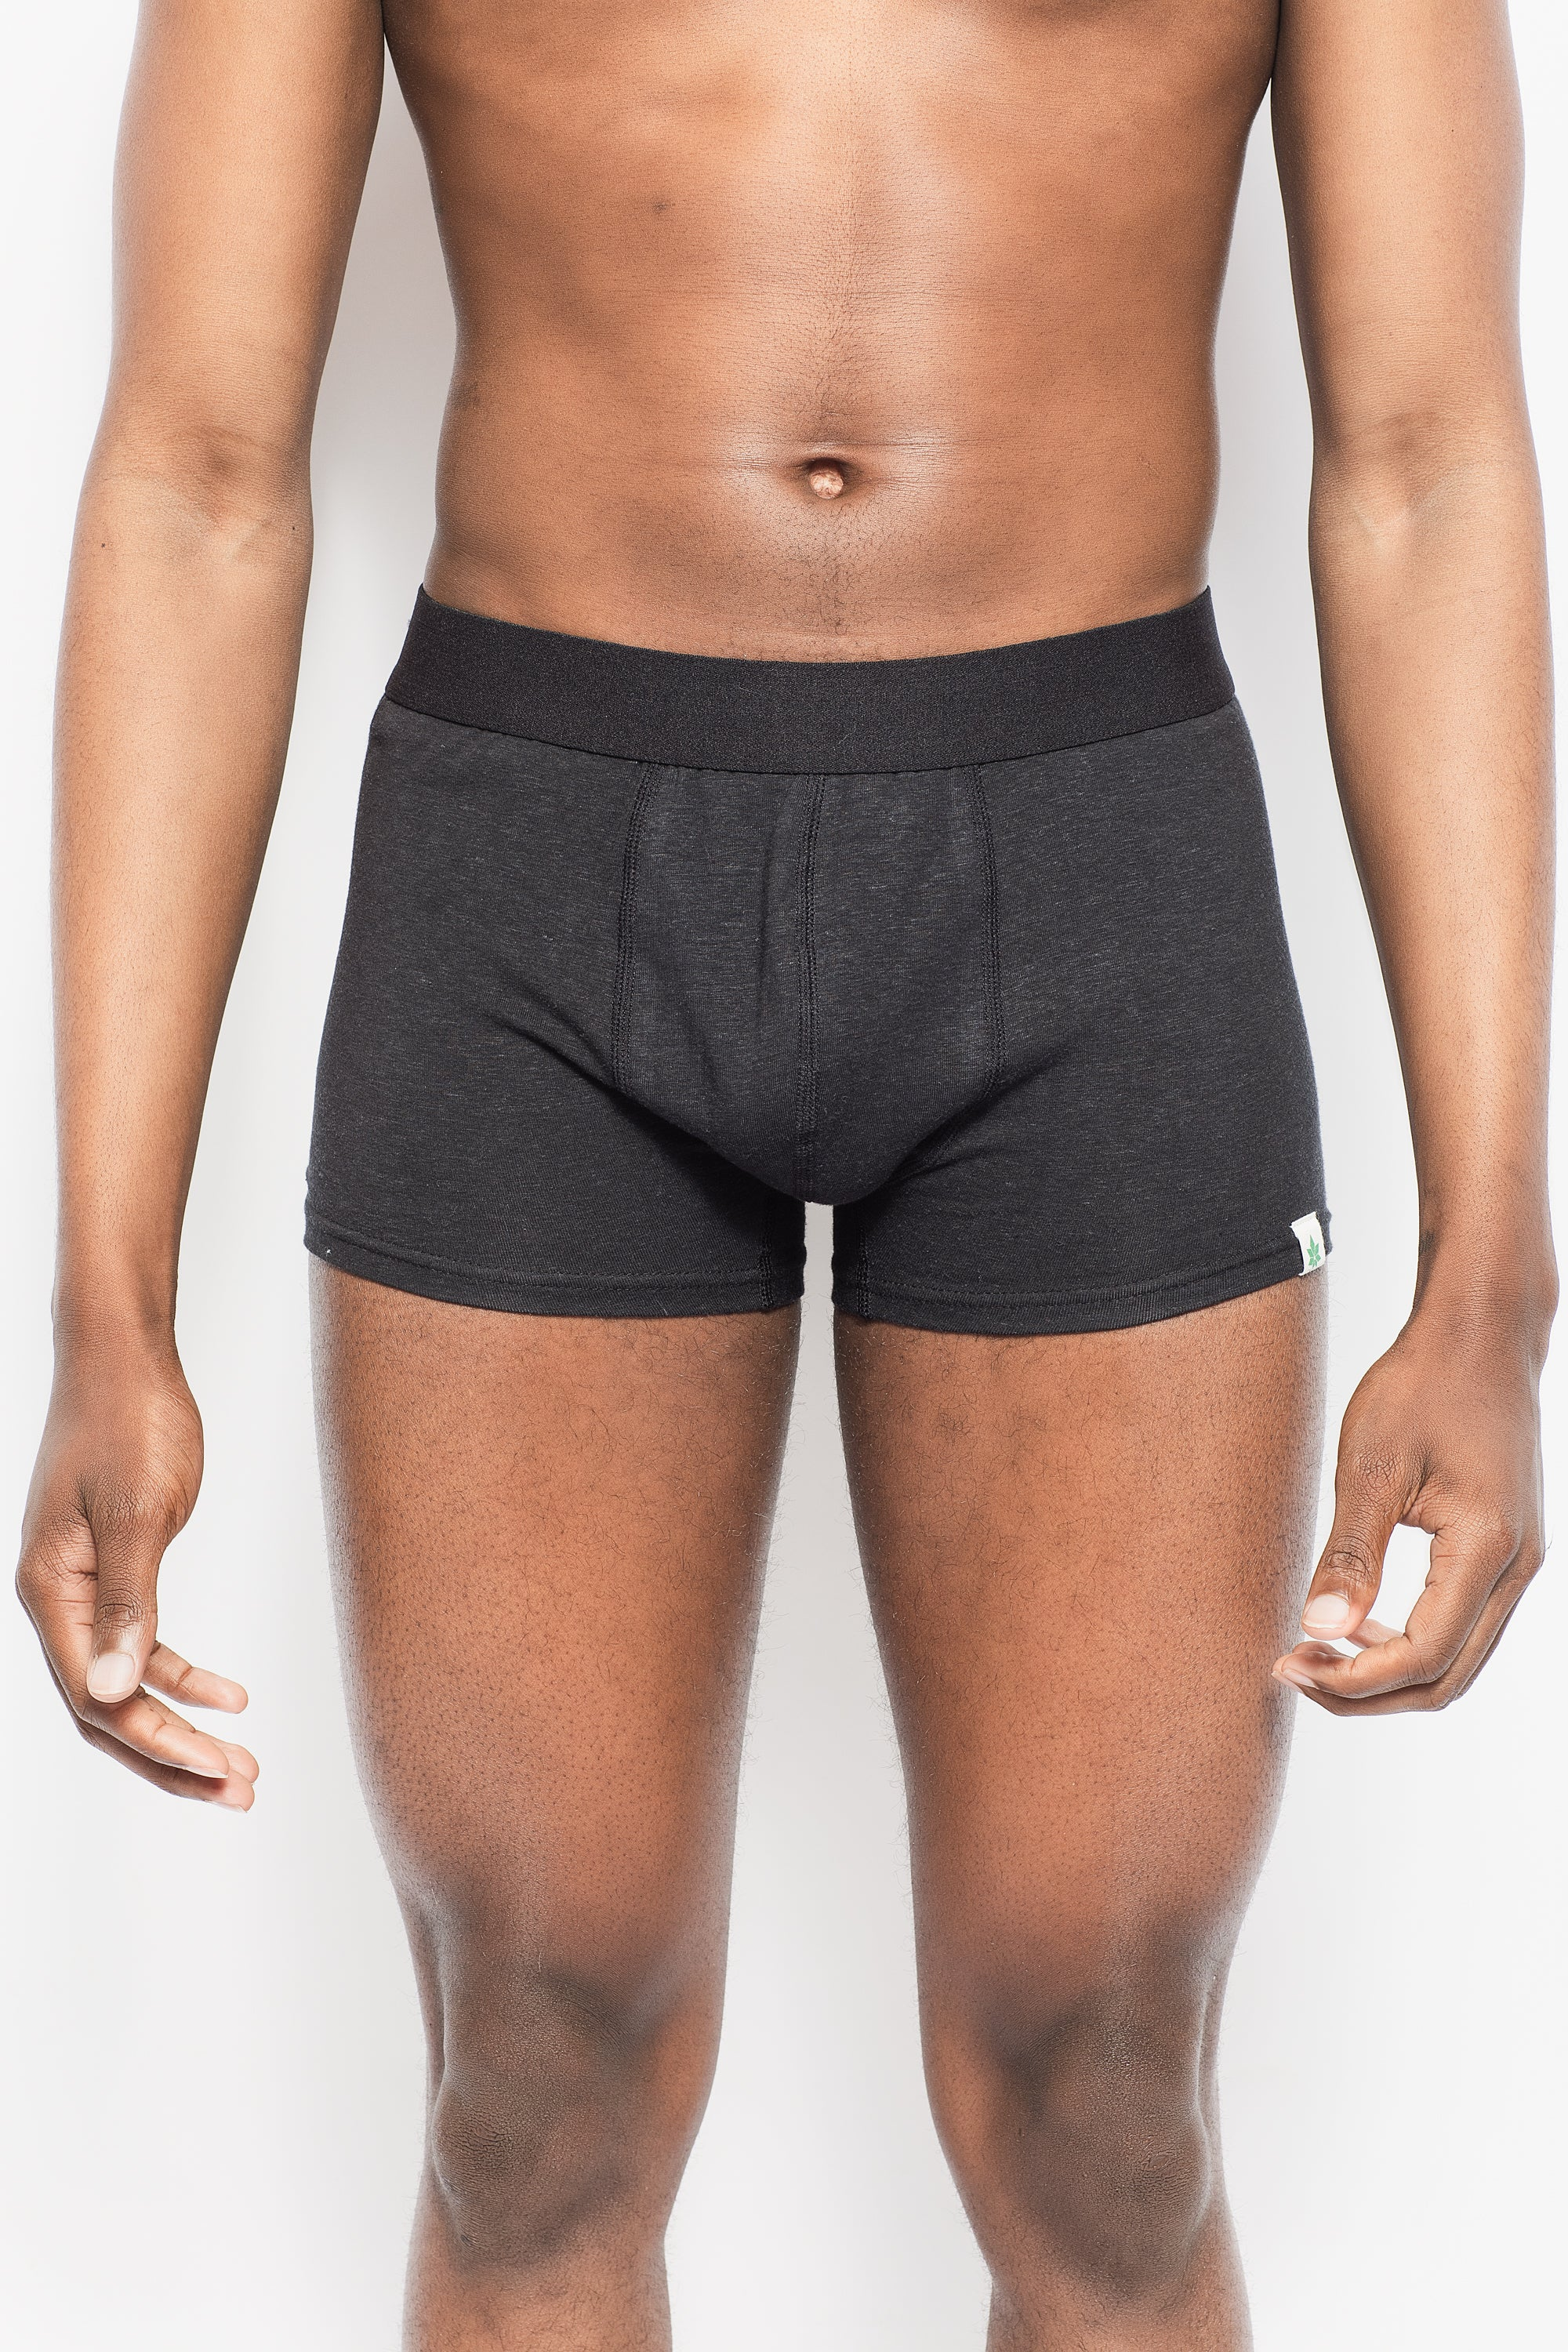 Mens Trunks x6 pack